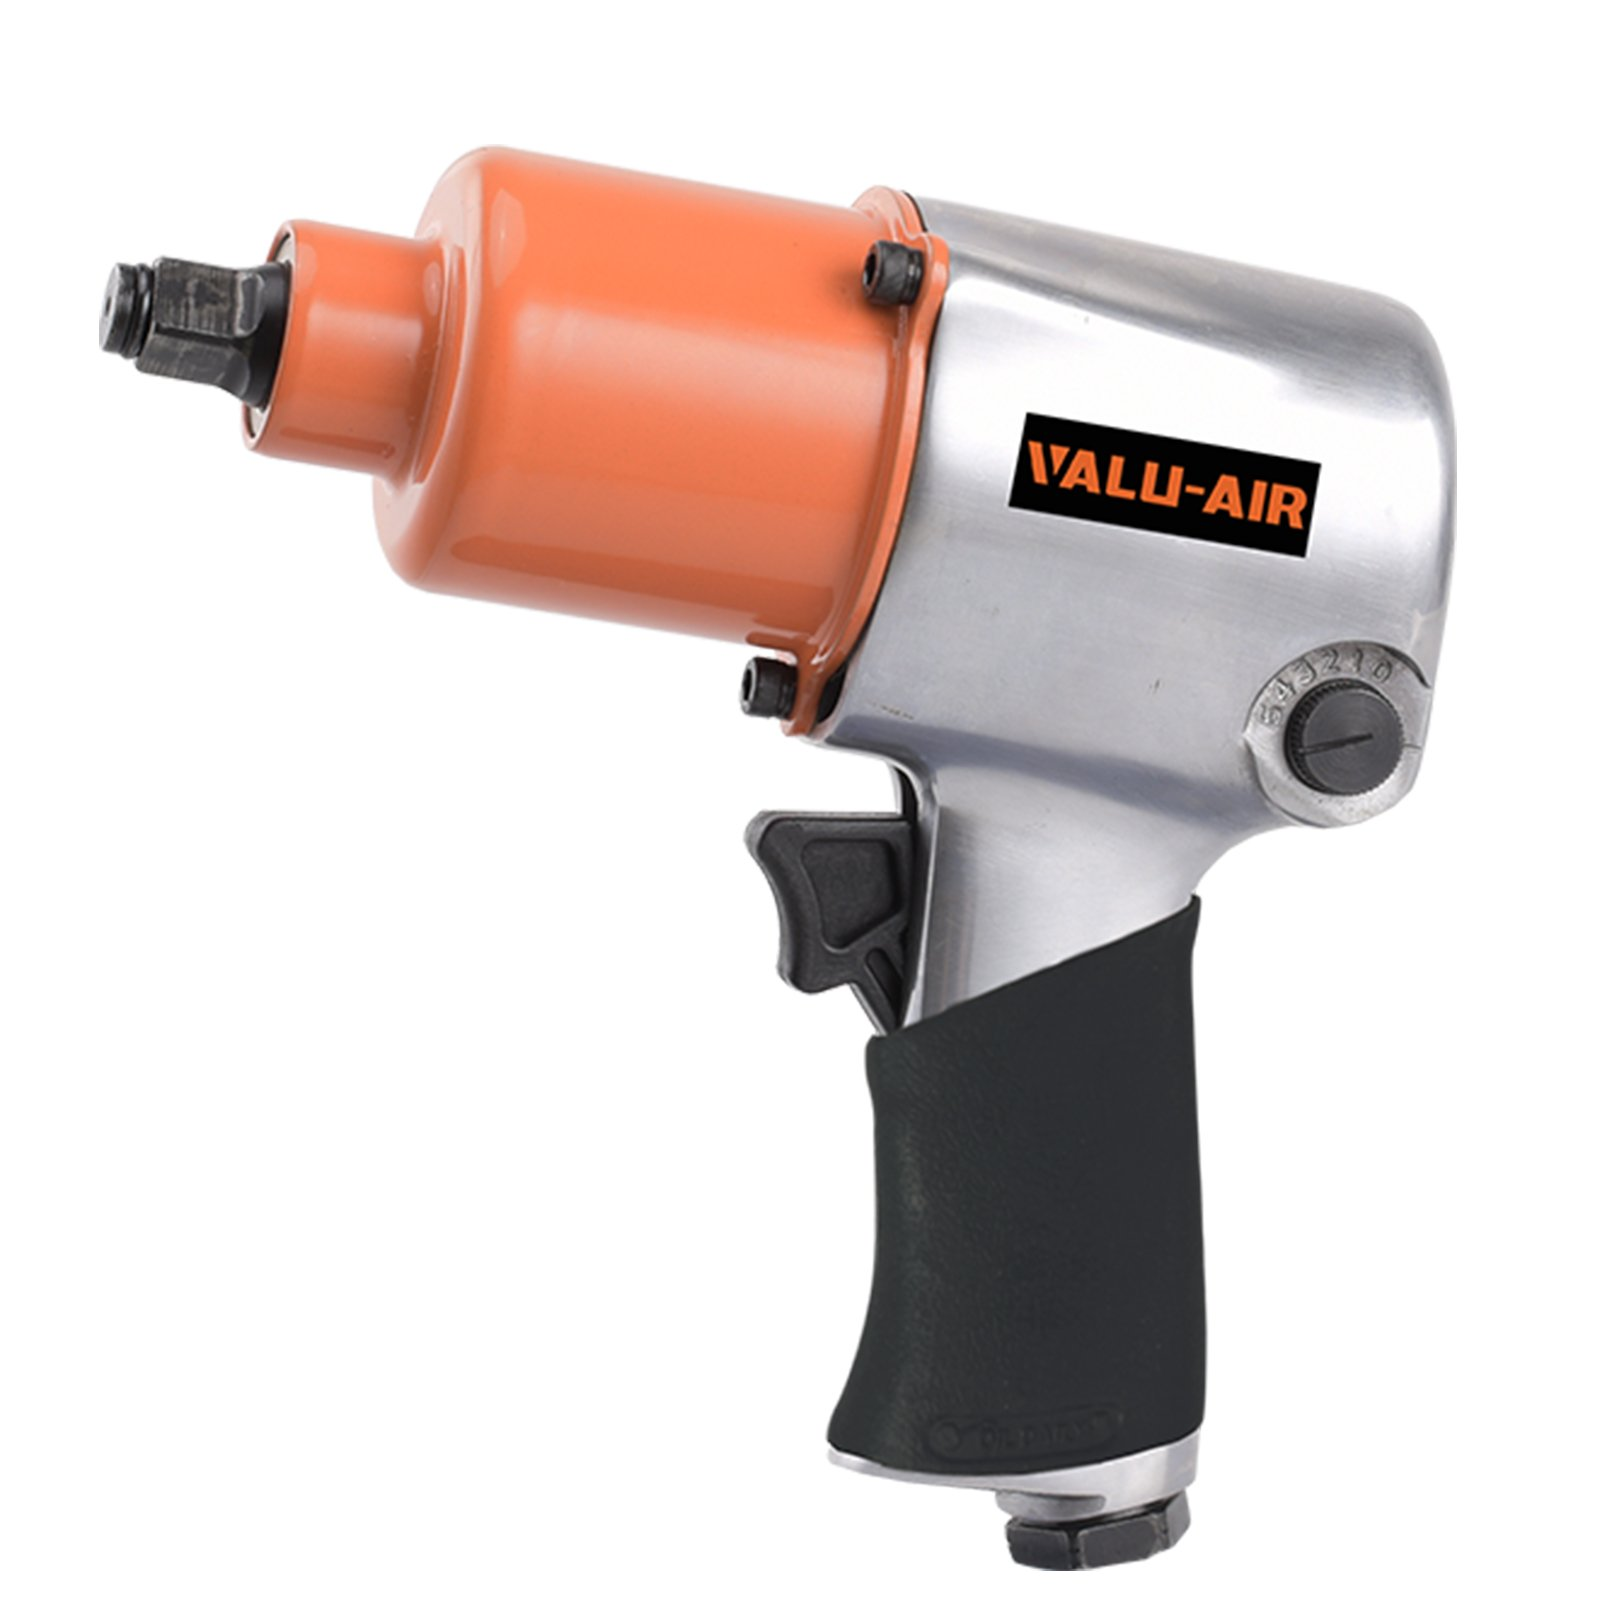 Valu-Air RP7430 1/2 Twin Hammer Air Impact Wrench by Valu-Air (Image #1)